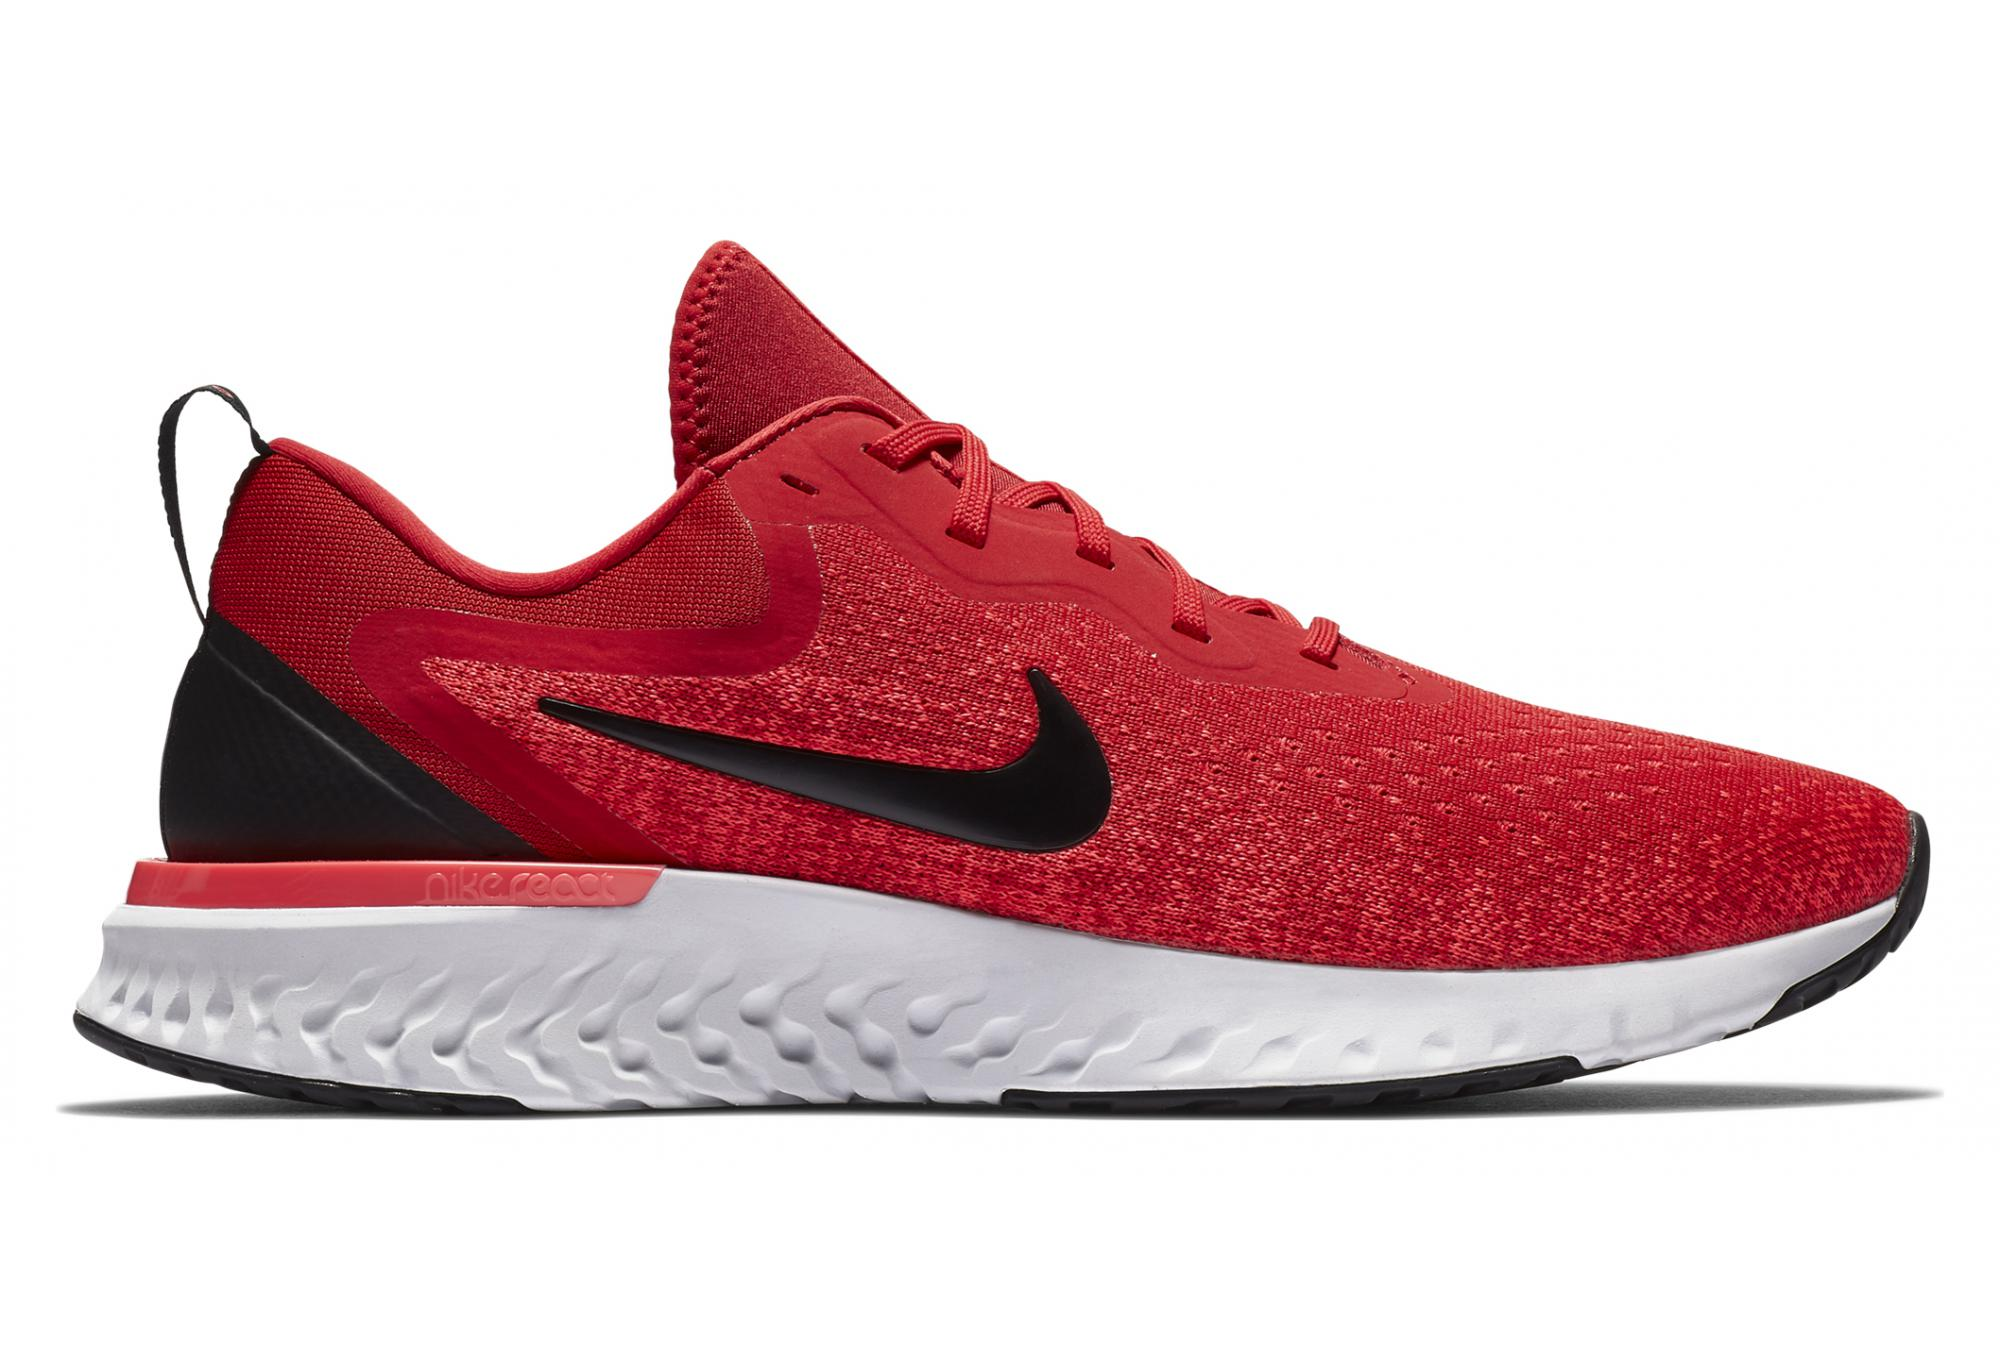 new style 1bf39 a79cb Nike Odyssey React Shoes Red Men